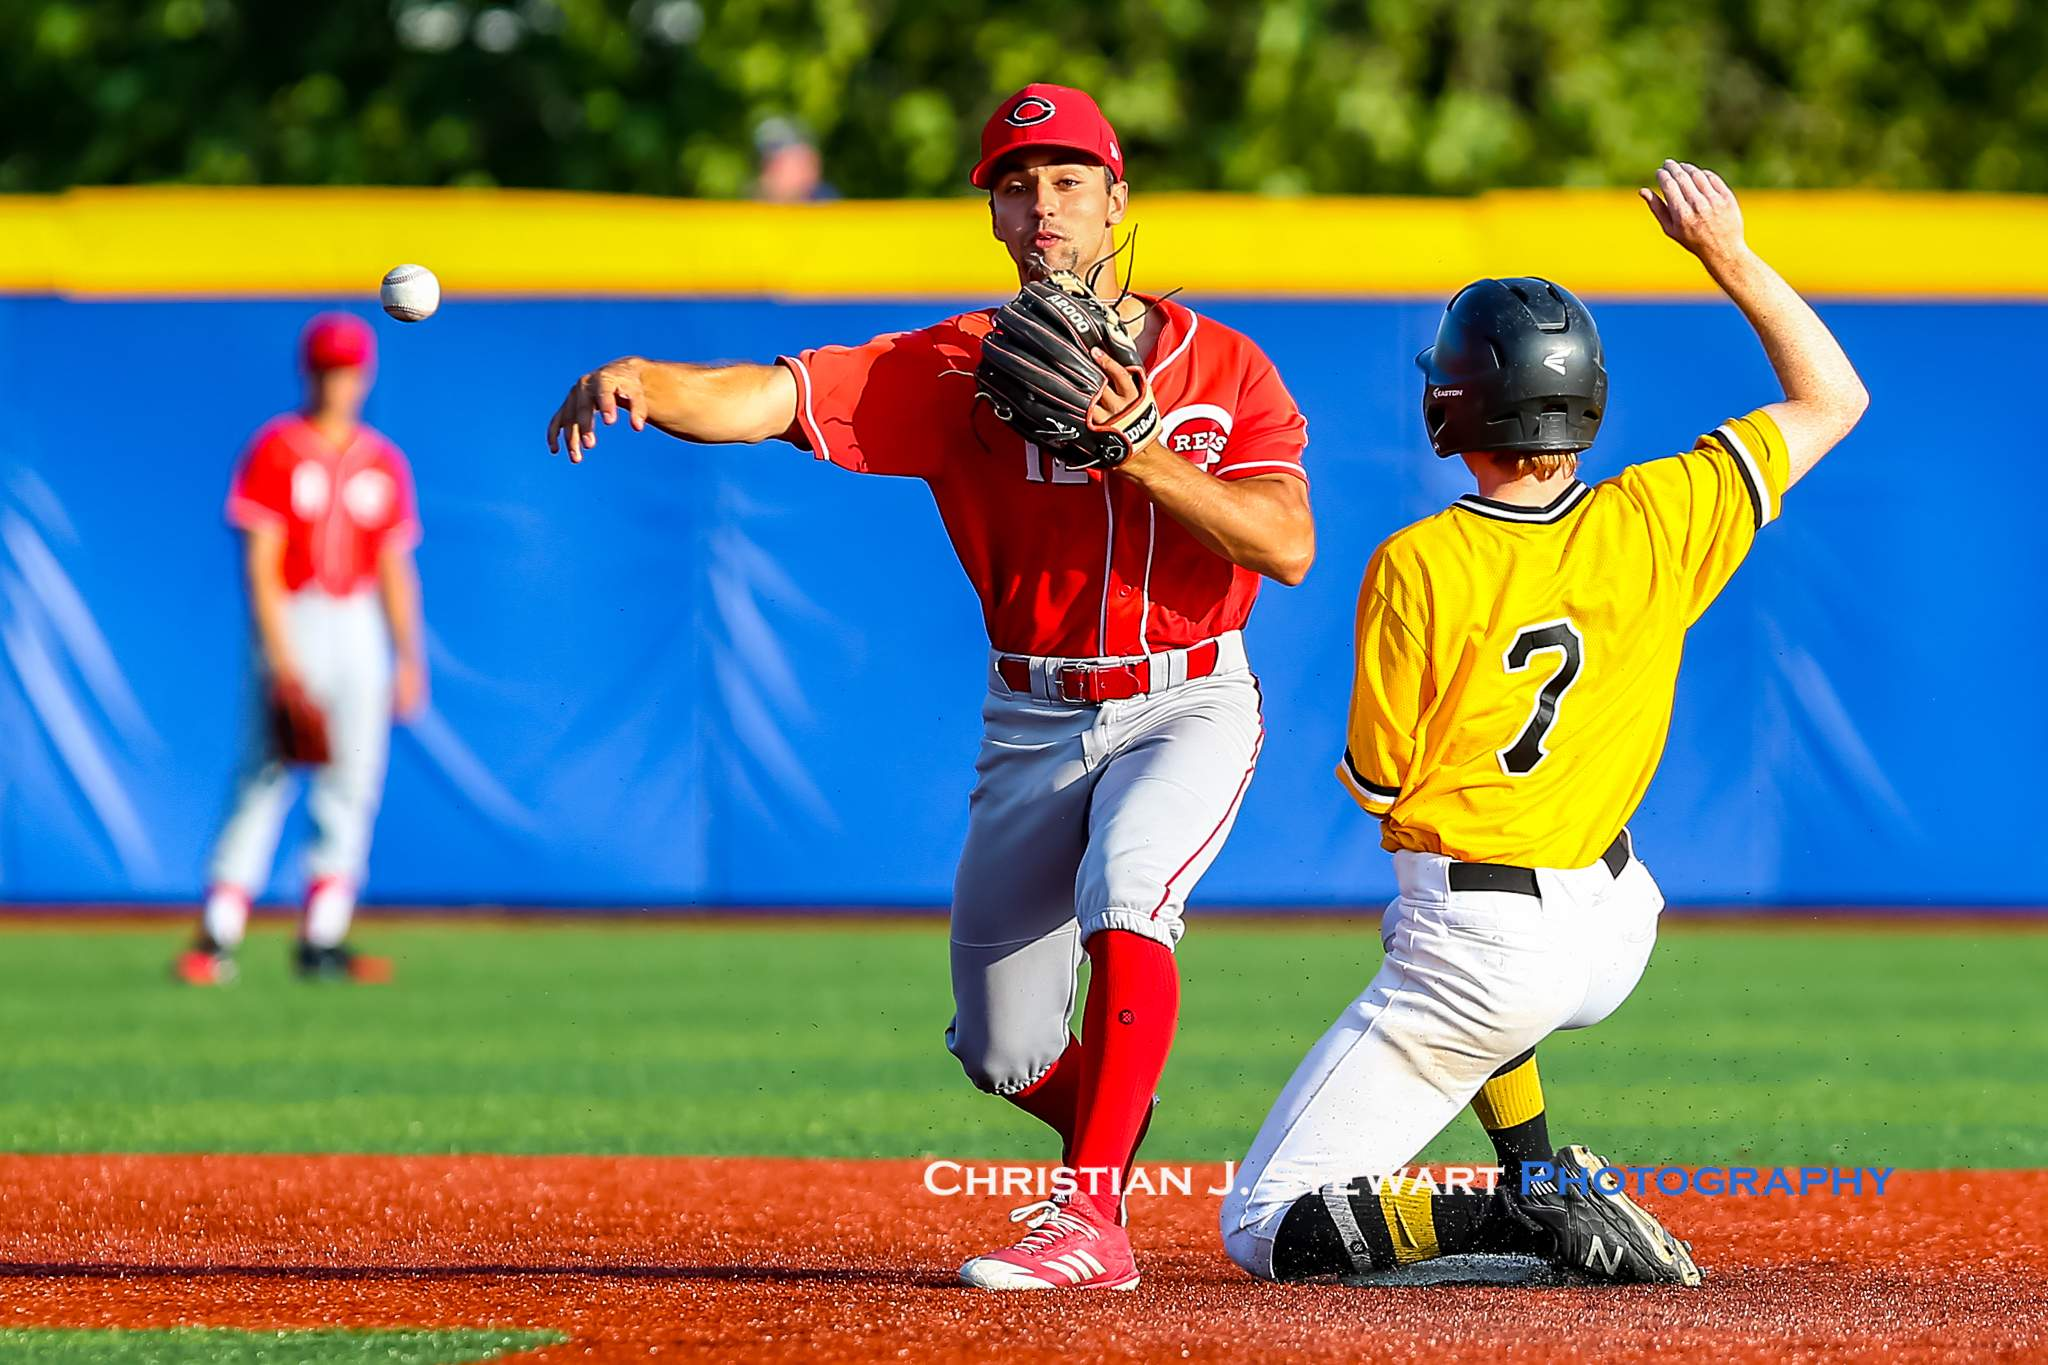 Reds second baseman Luciano Letteri turns the double play on the Pirates Jackson Stephen during the game Saturday night (Photo: Christian J. Stewart)